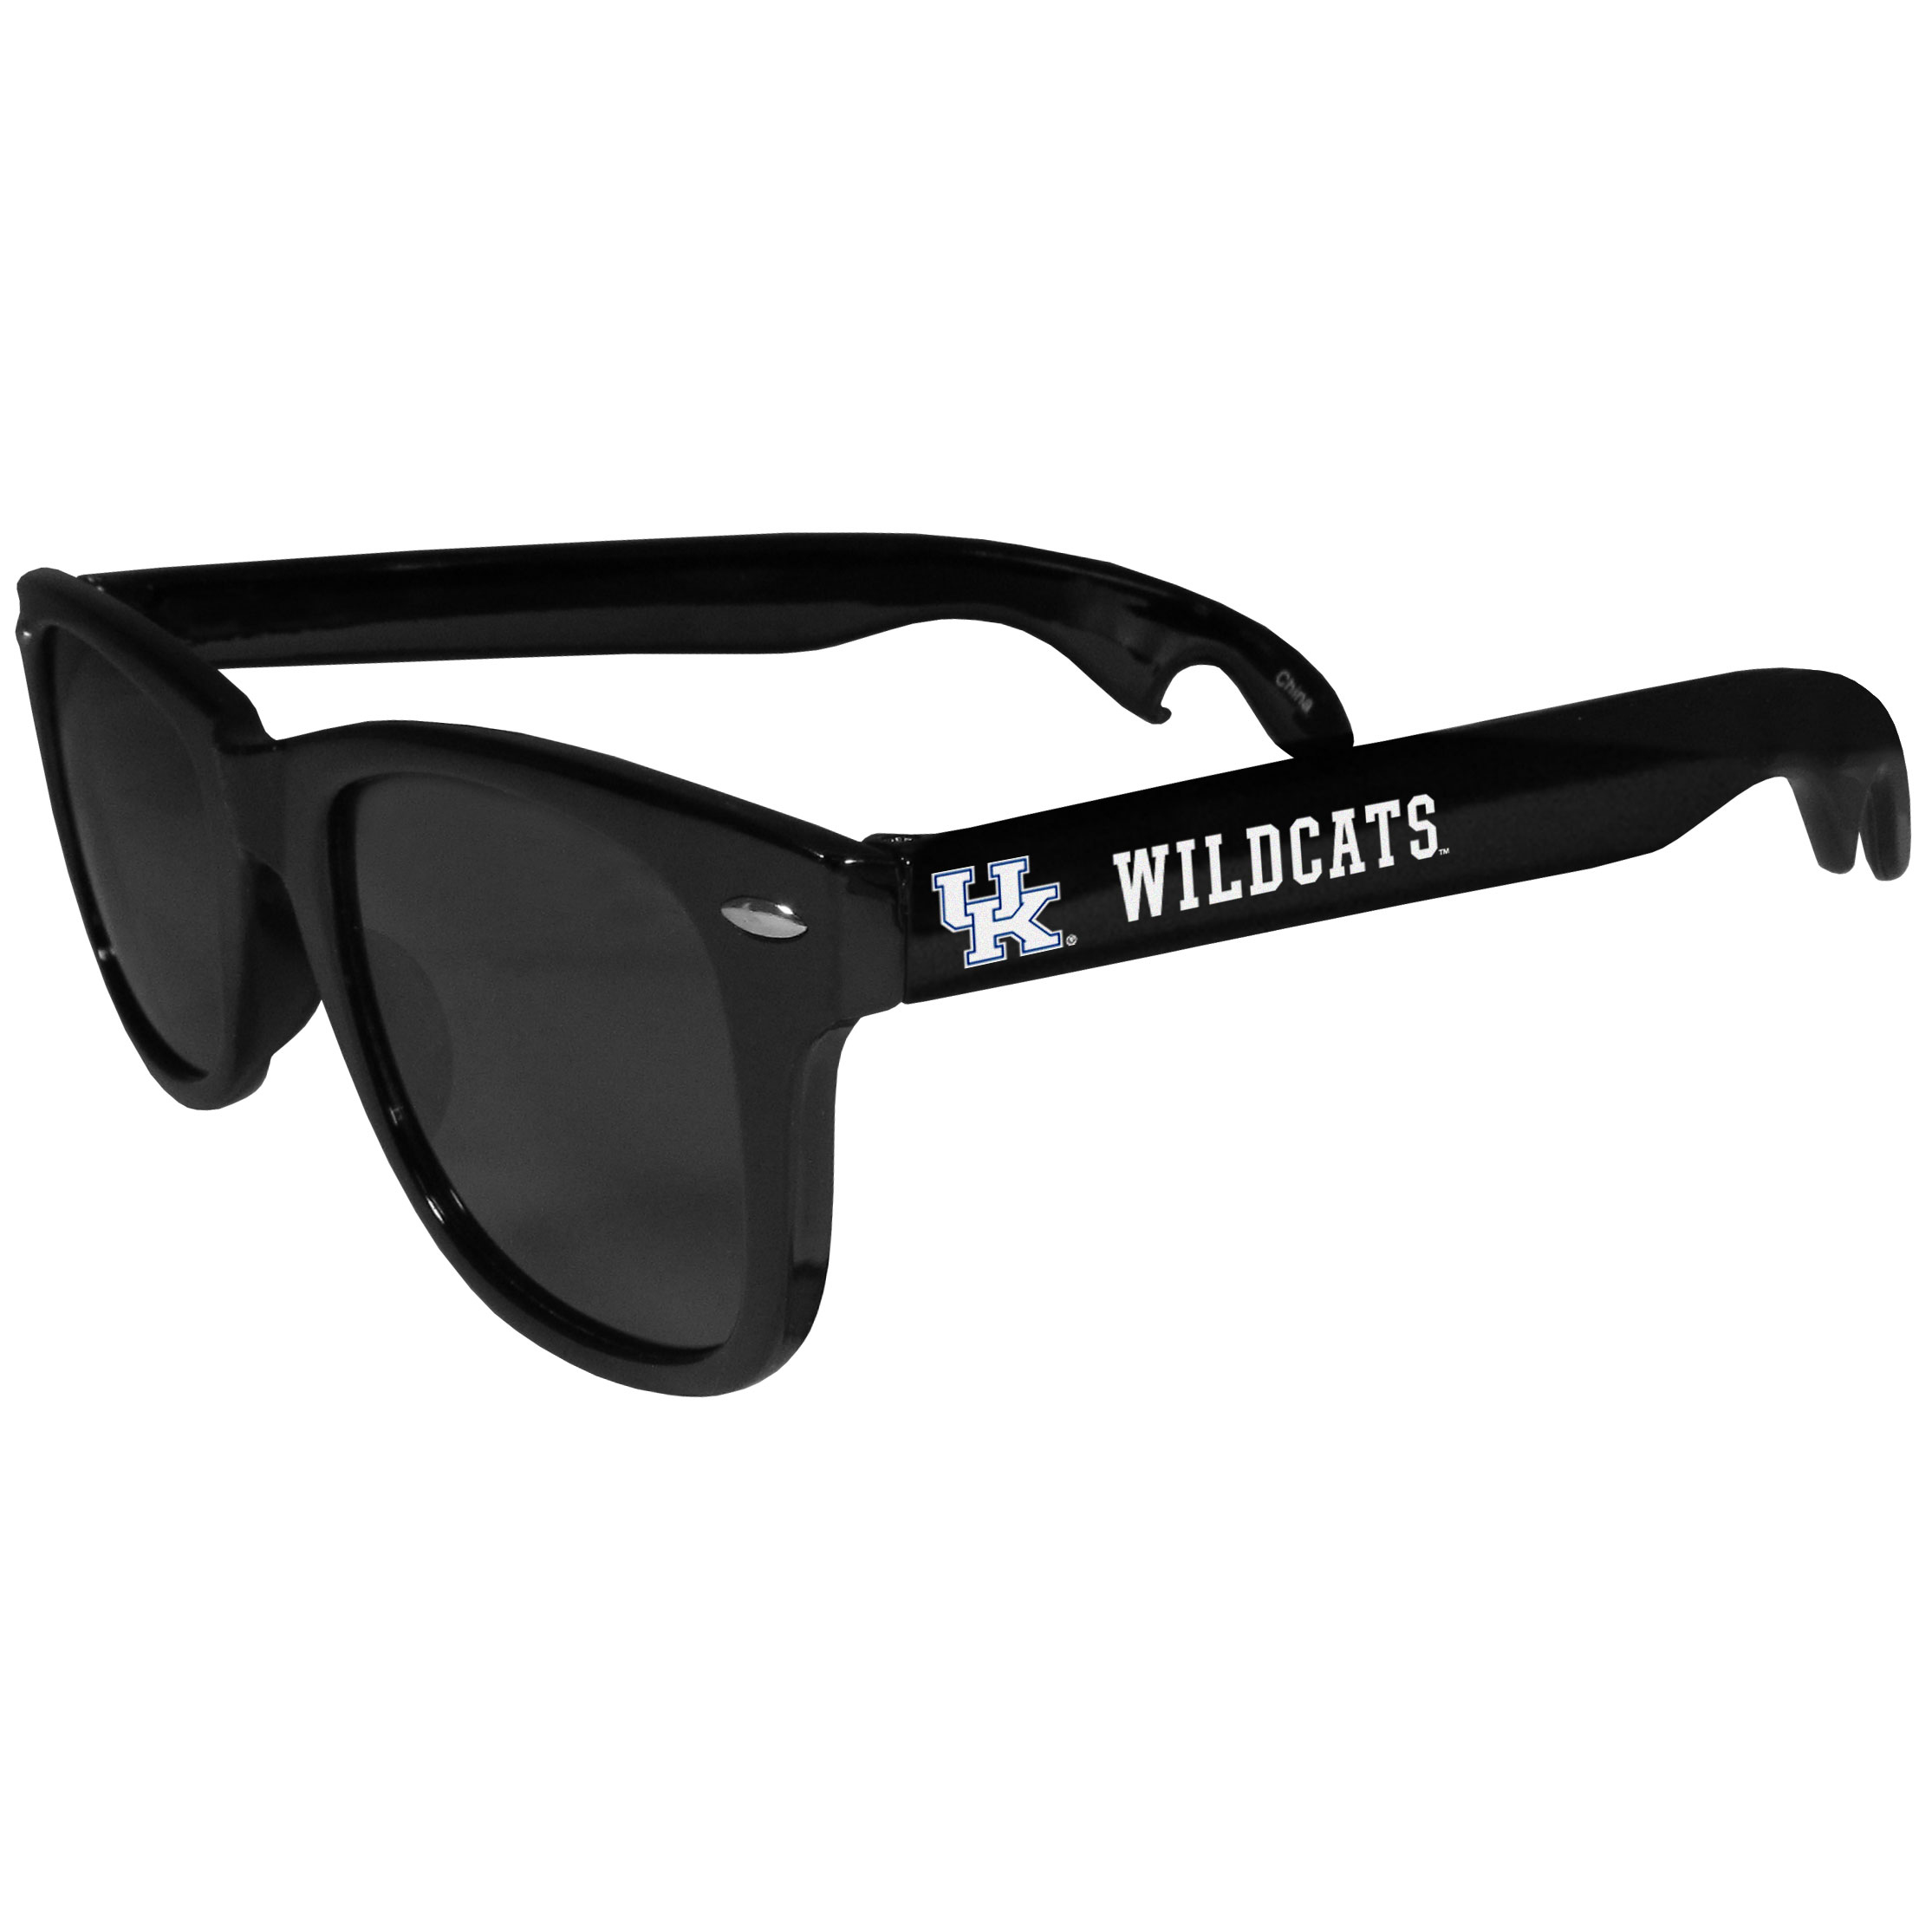 Kentucky Wildcats Beachfarer Bottle Opener Sunglasses - Seriously, these sunglasses open bottles! Keep the party going with these amazing Kentucky Wildcats bottle opener sunglasses. The stylish retro frames feature team designs on the arms and functional bottle openers on the end of the arms. Whether you are at the beach or having a backyard BBQ on game day, these shades will keep your eyes protected with 100% UVA/UVB protection and keep you hydrated with the handy bottle opener arms.